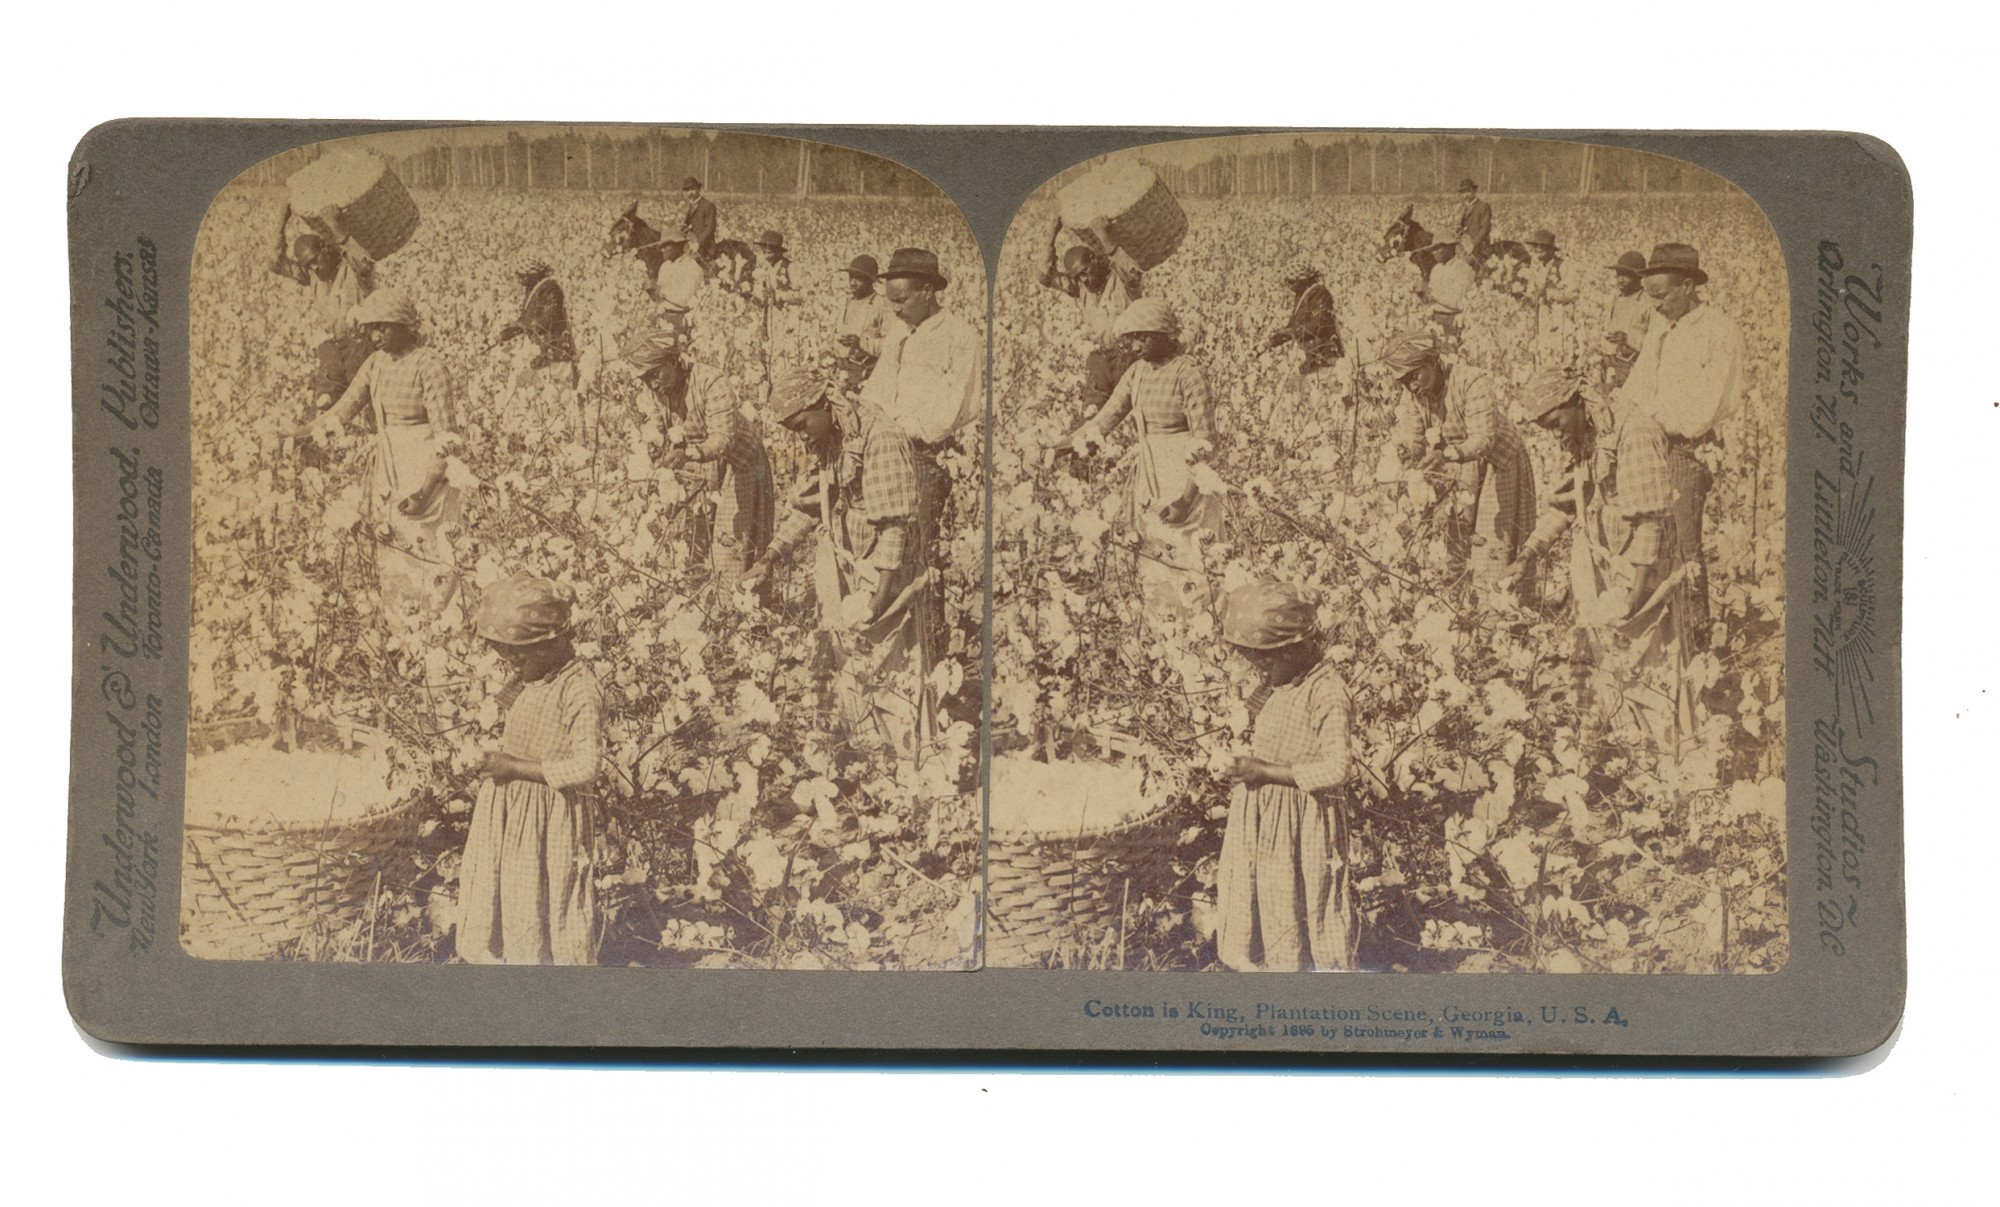 STEREO CARD OF COTTON PICKING IN PROGRESS